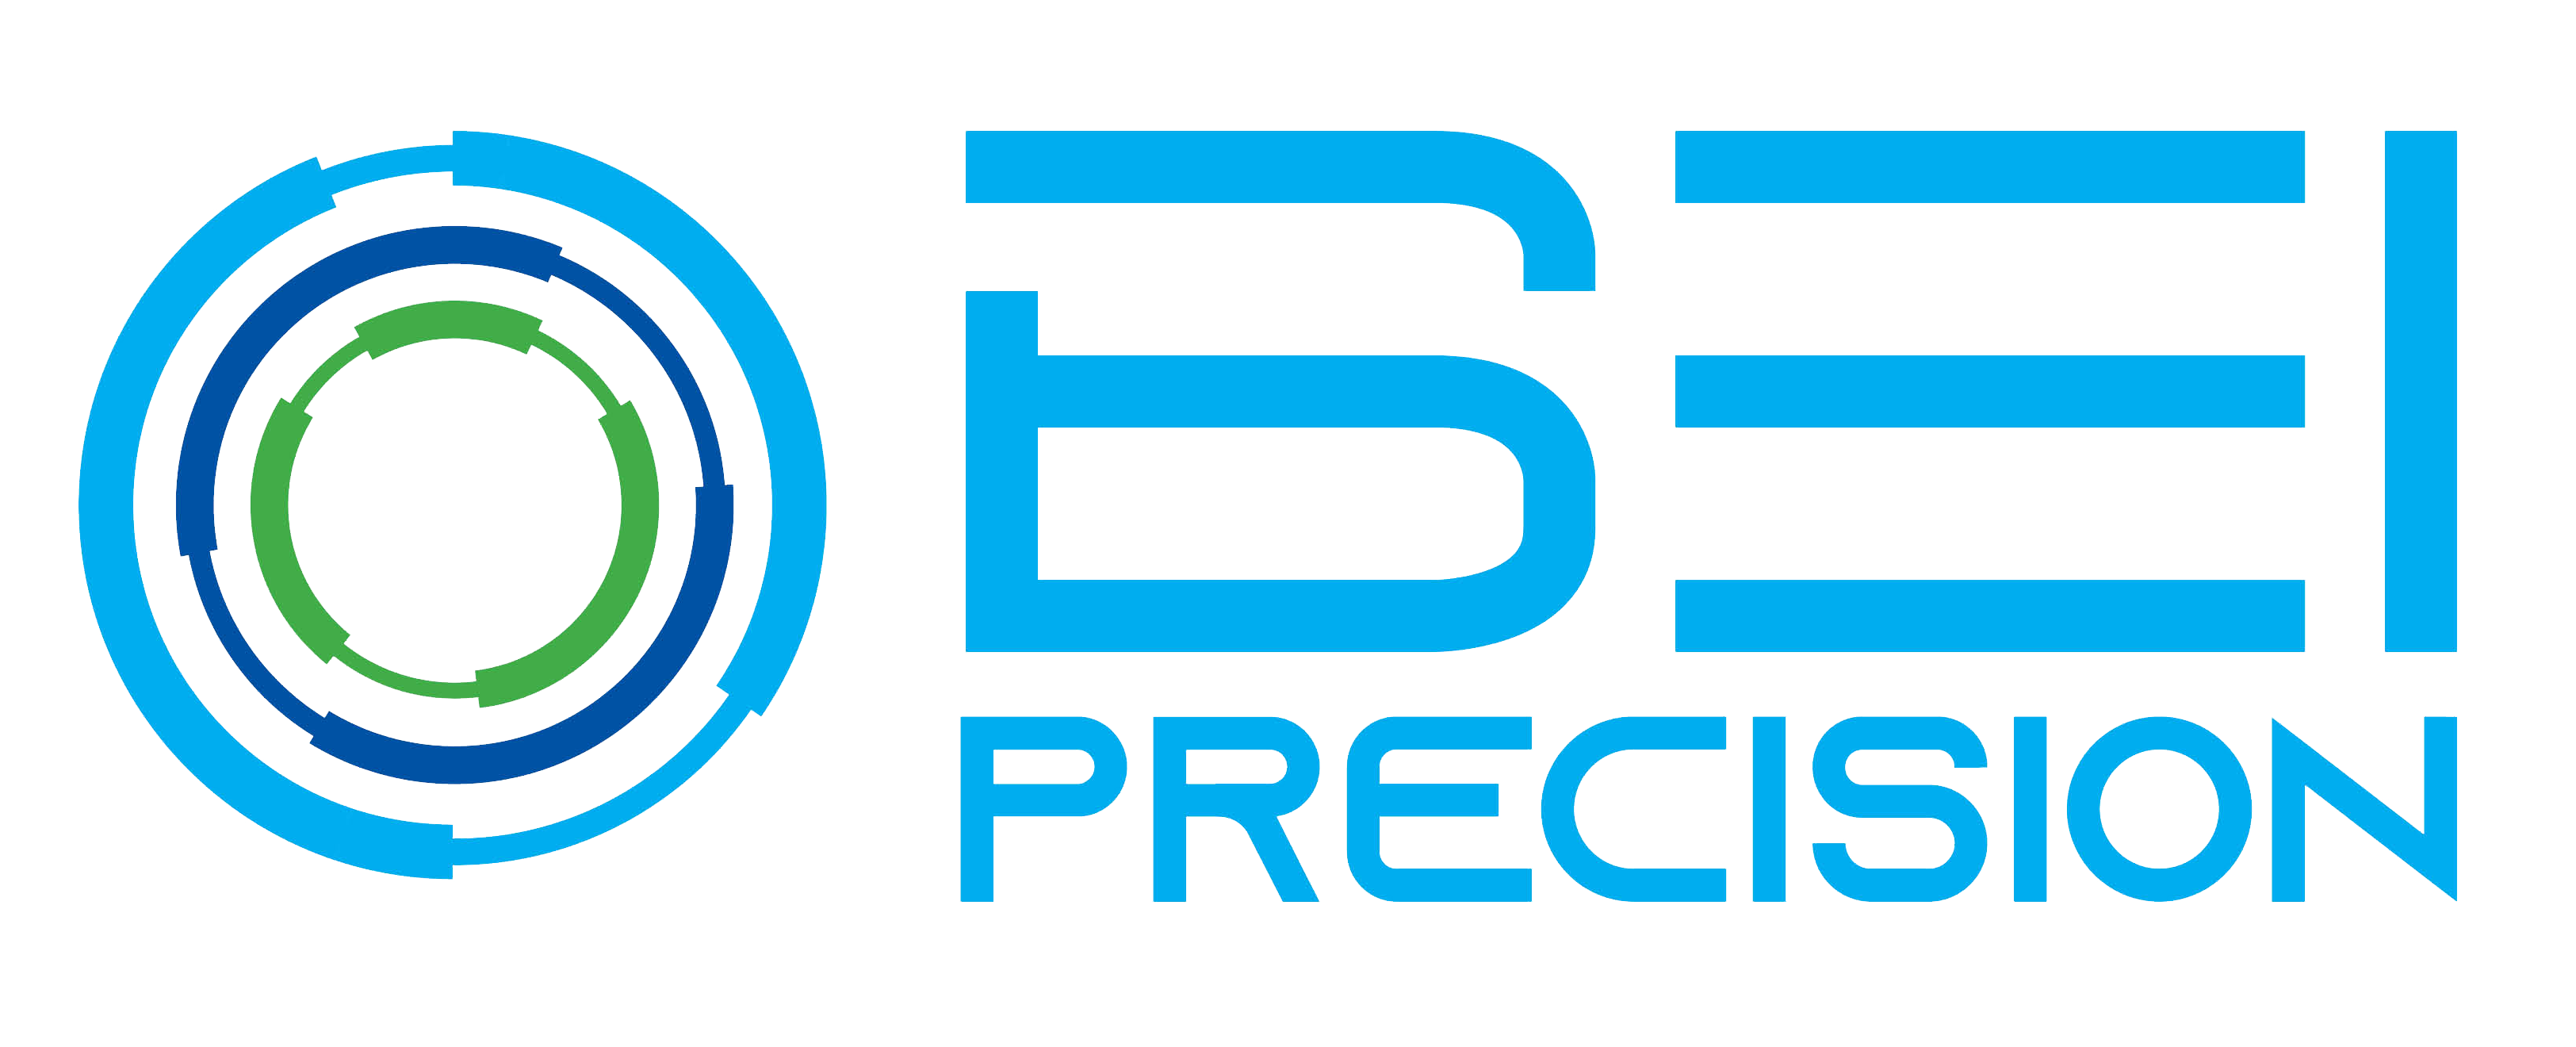 J.F. Lehman & Company Acquires BEI Precision Systems & Space Company, May 4 2017